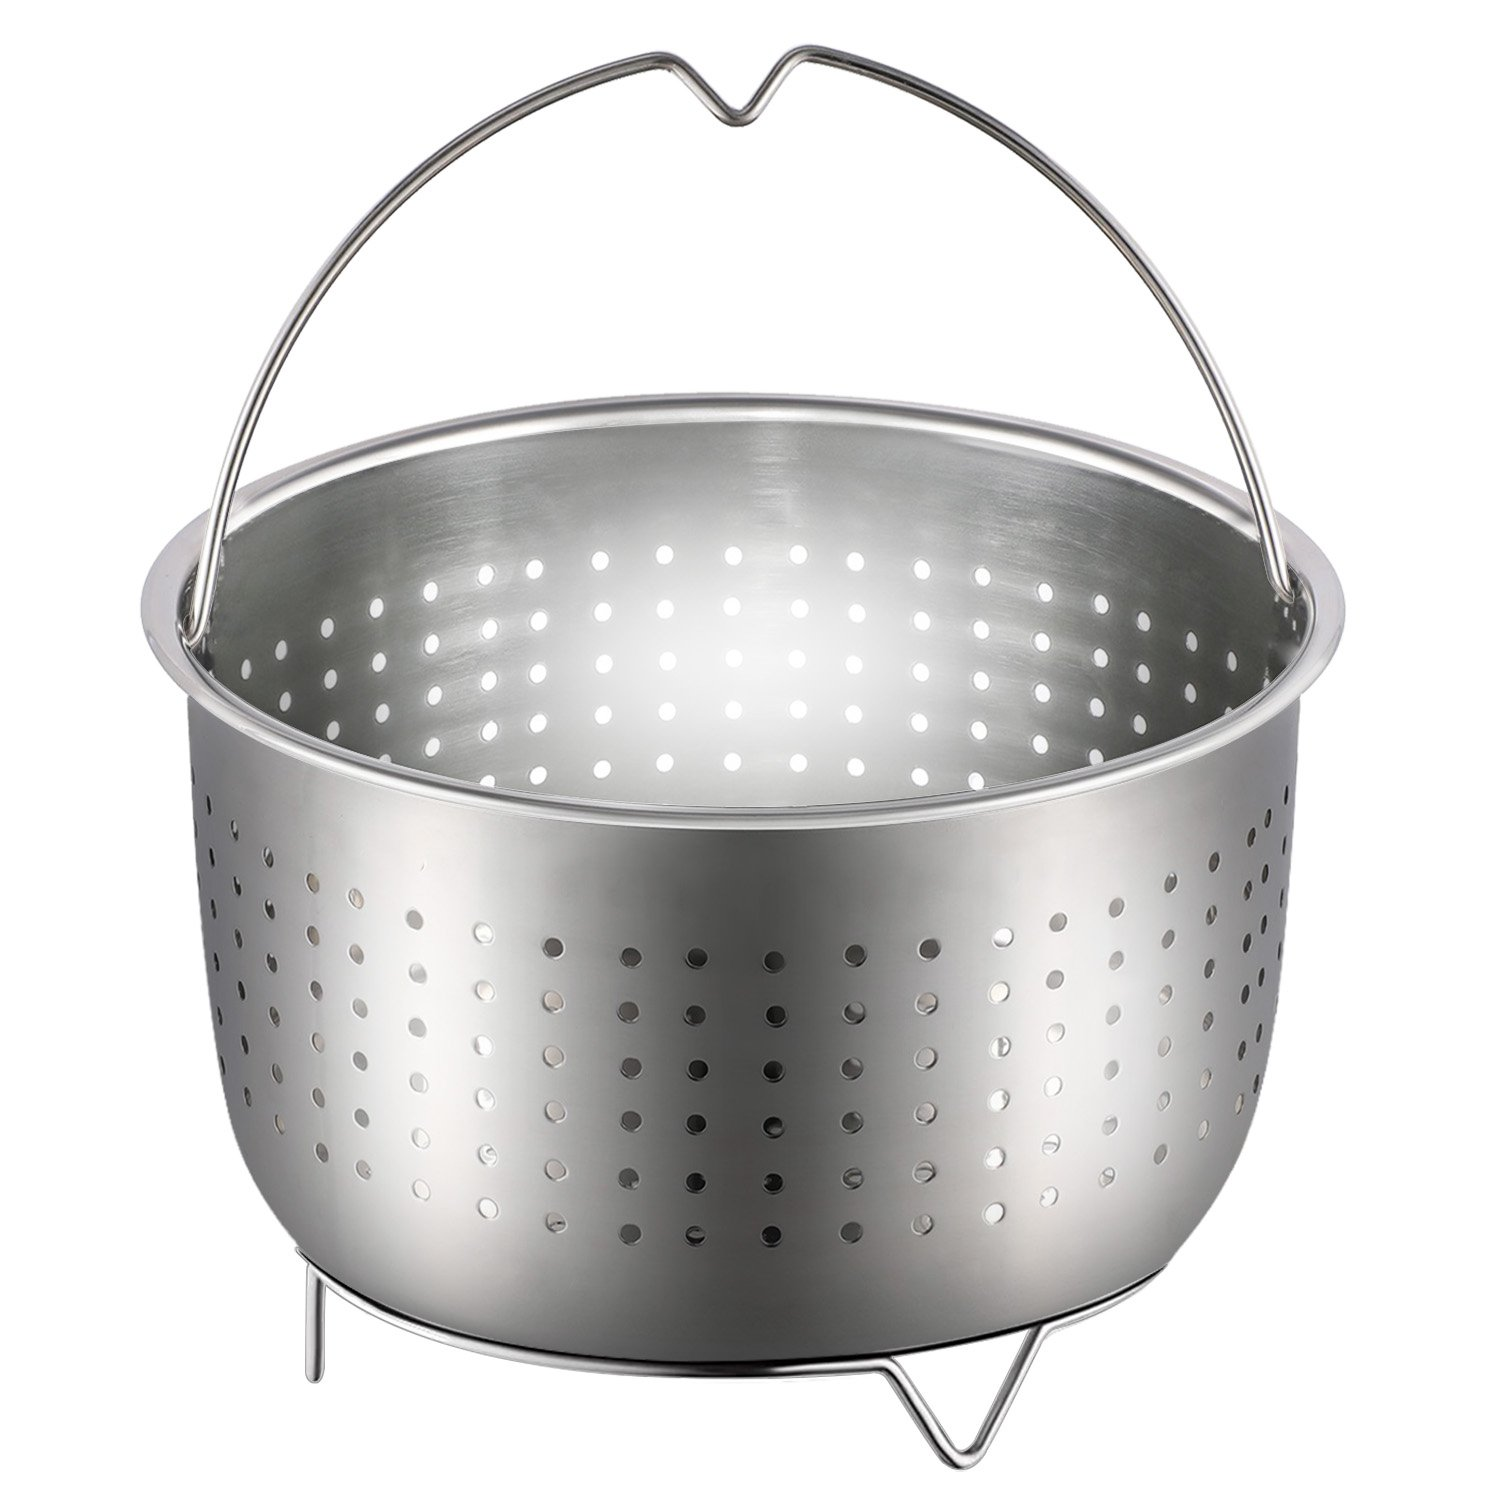 Steamer Basket, Anumit Instant Pot Accessories Stainless Steel Strainer and Insert fits 6 or 8 Quart IP Insta Pot, Instapot, Other Pressure Cookers and Pots, Great for Steaming Vegetables Fruits Eggs